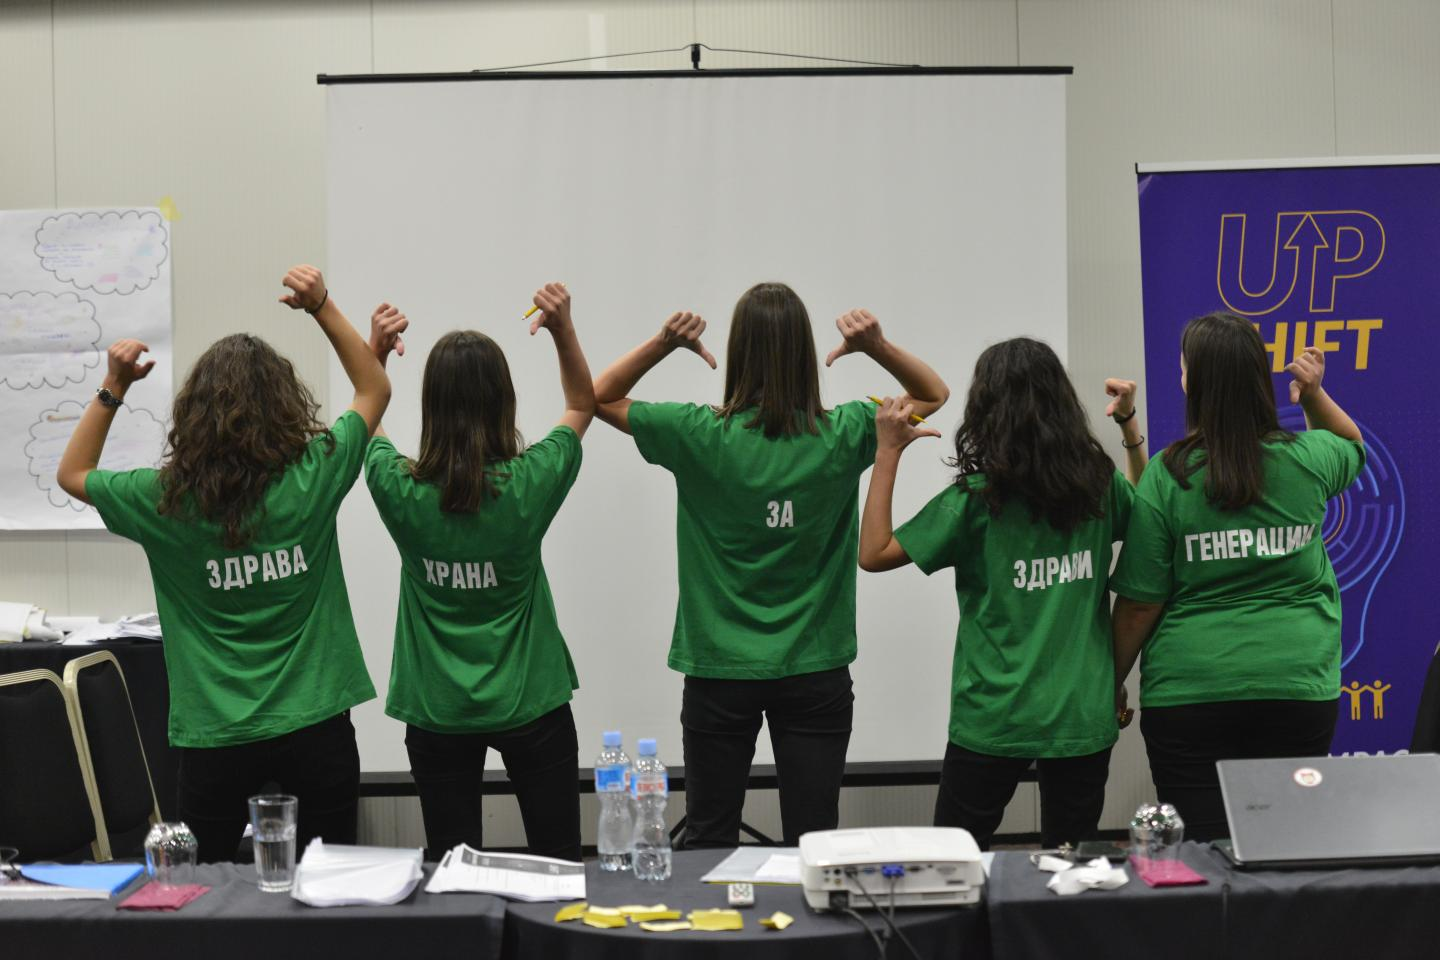 The team of five girls wearing green shirts each of which contains a single word, jointly creating the message - healthy food for healthy generations